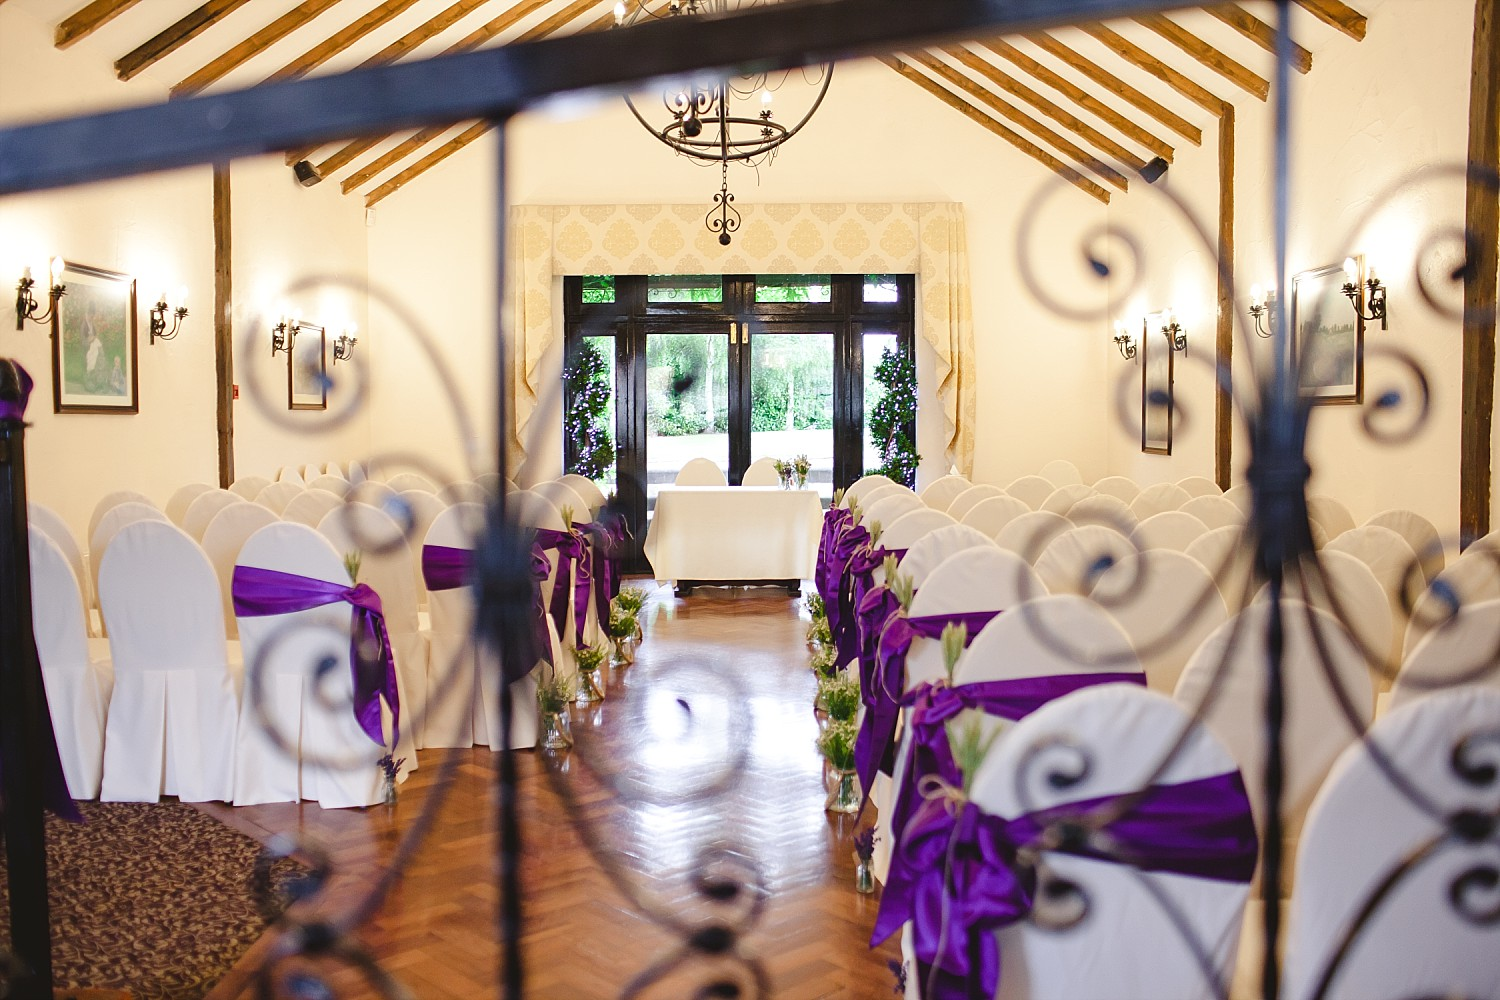 Crondon Park Weddings - Ceremony Room